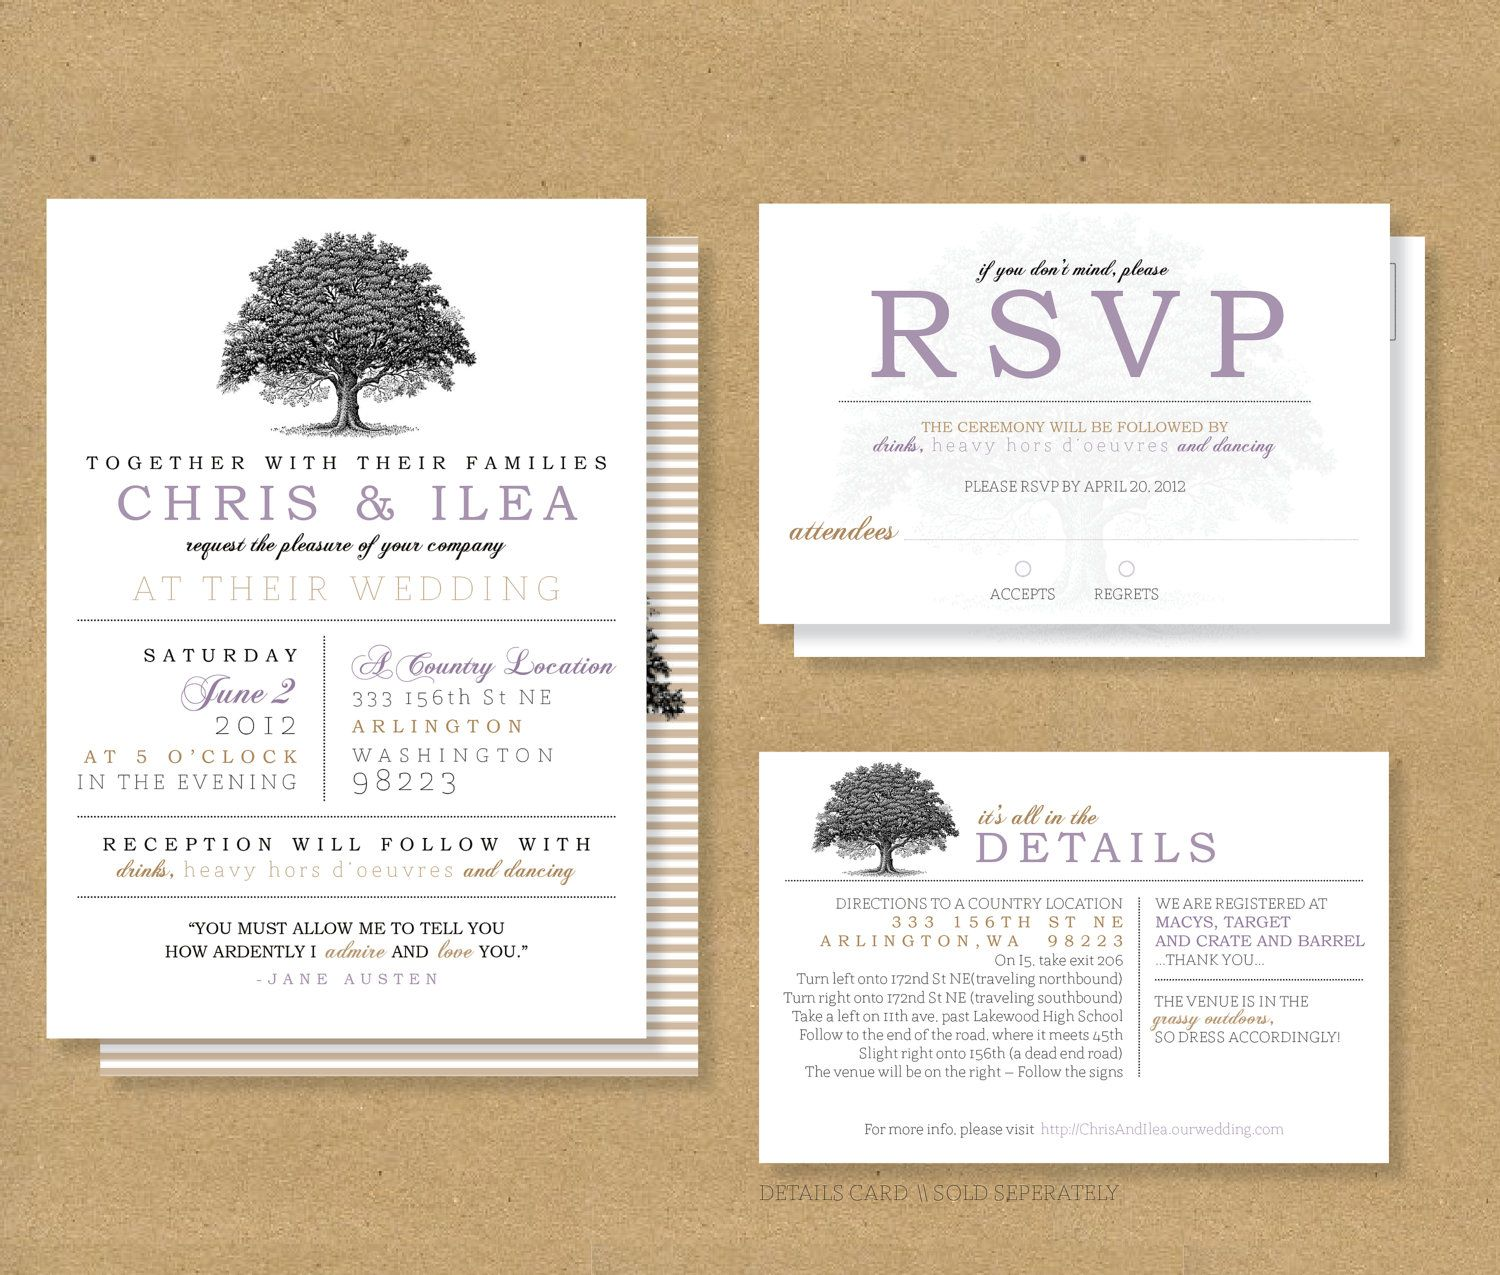 Wedding Invitation Rsvp Wording Samples Tips For Your Card